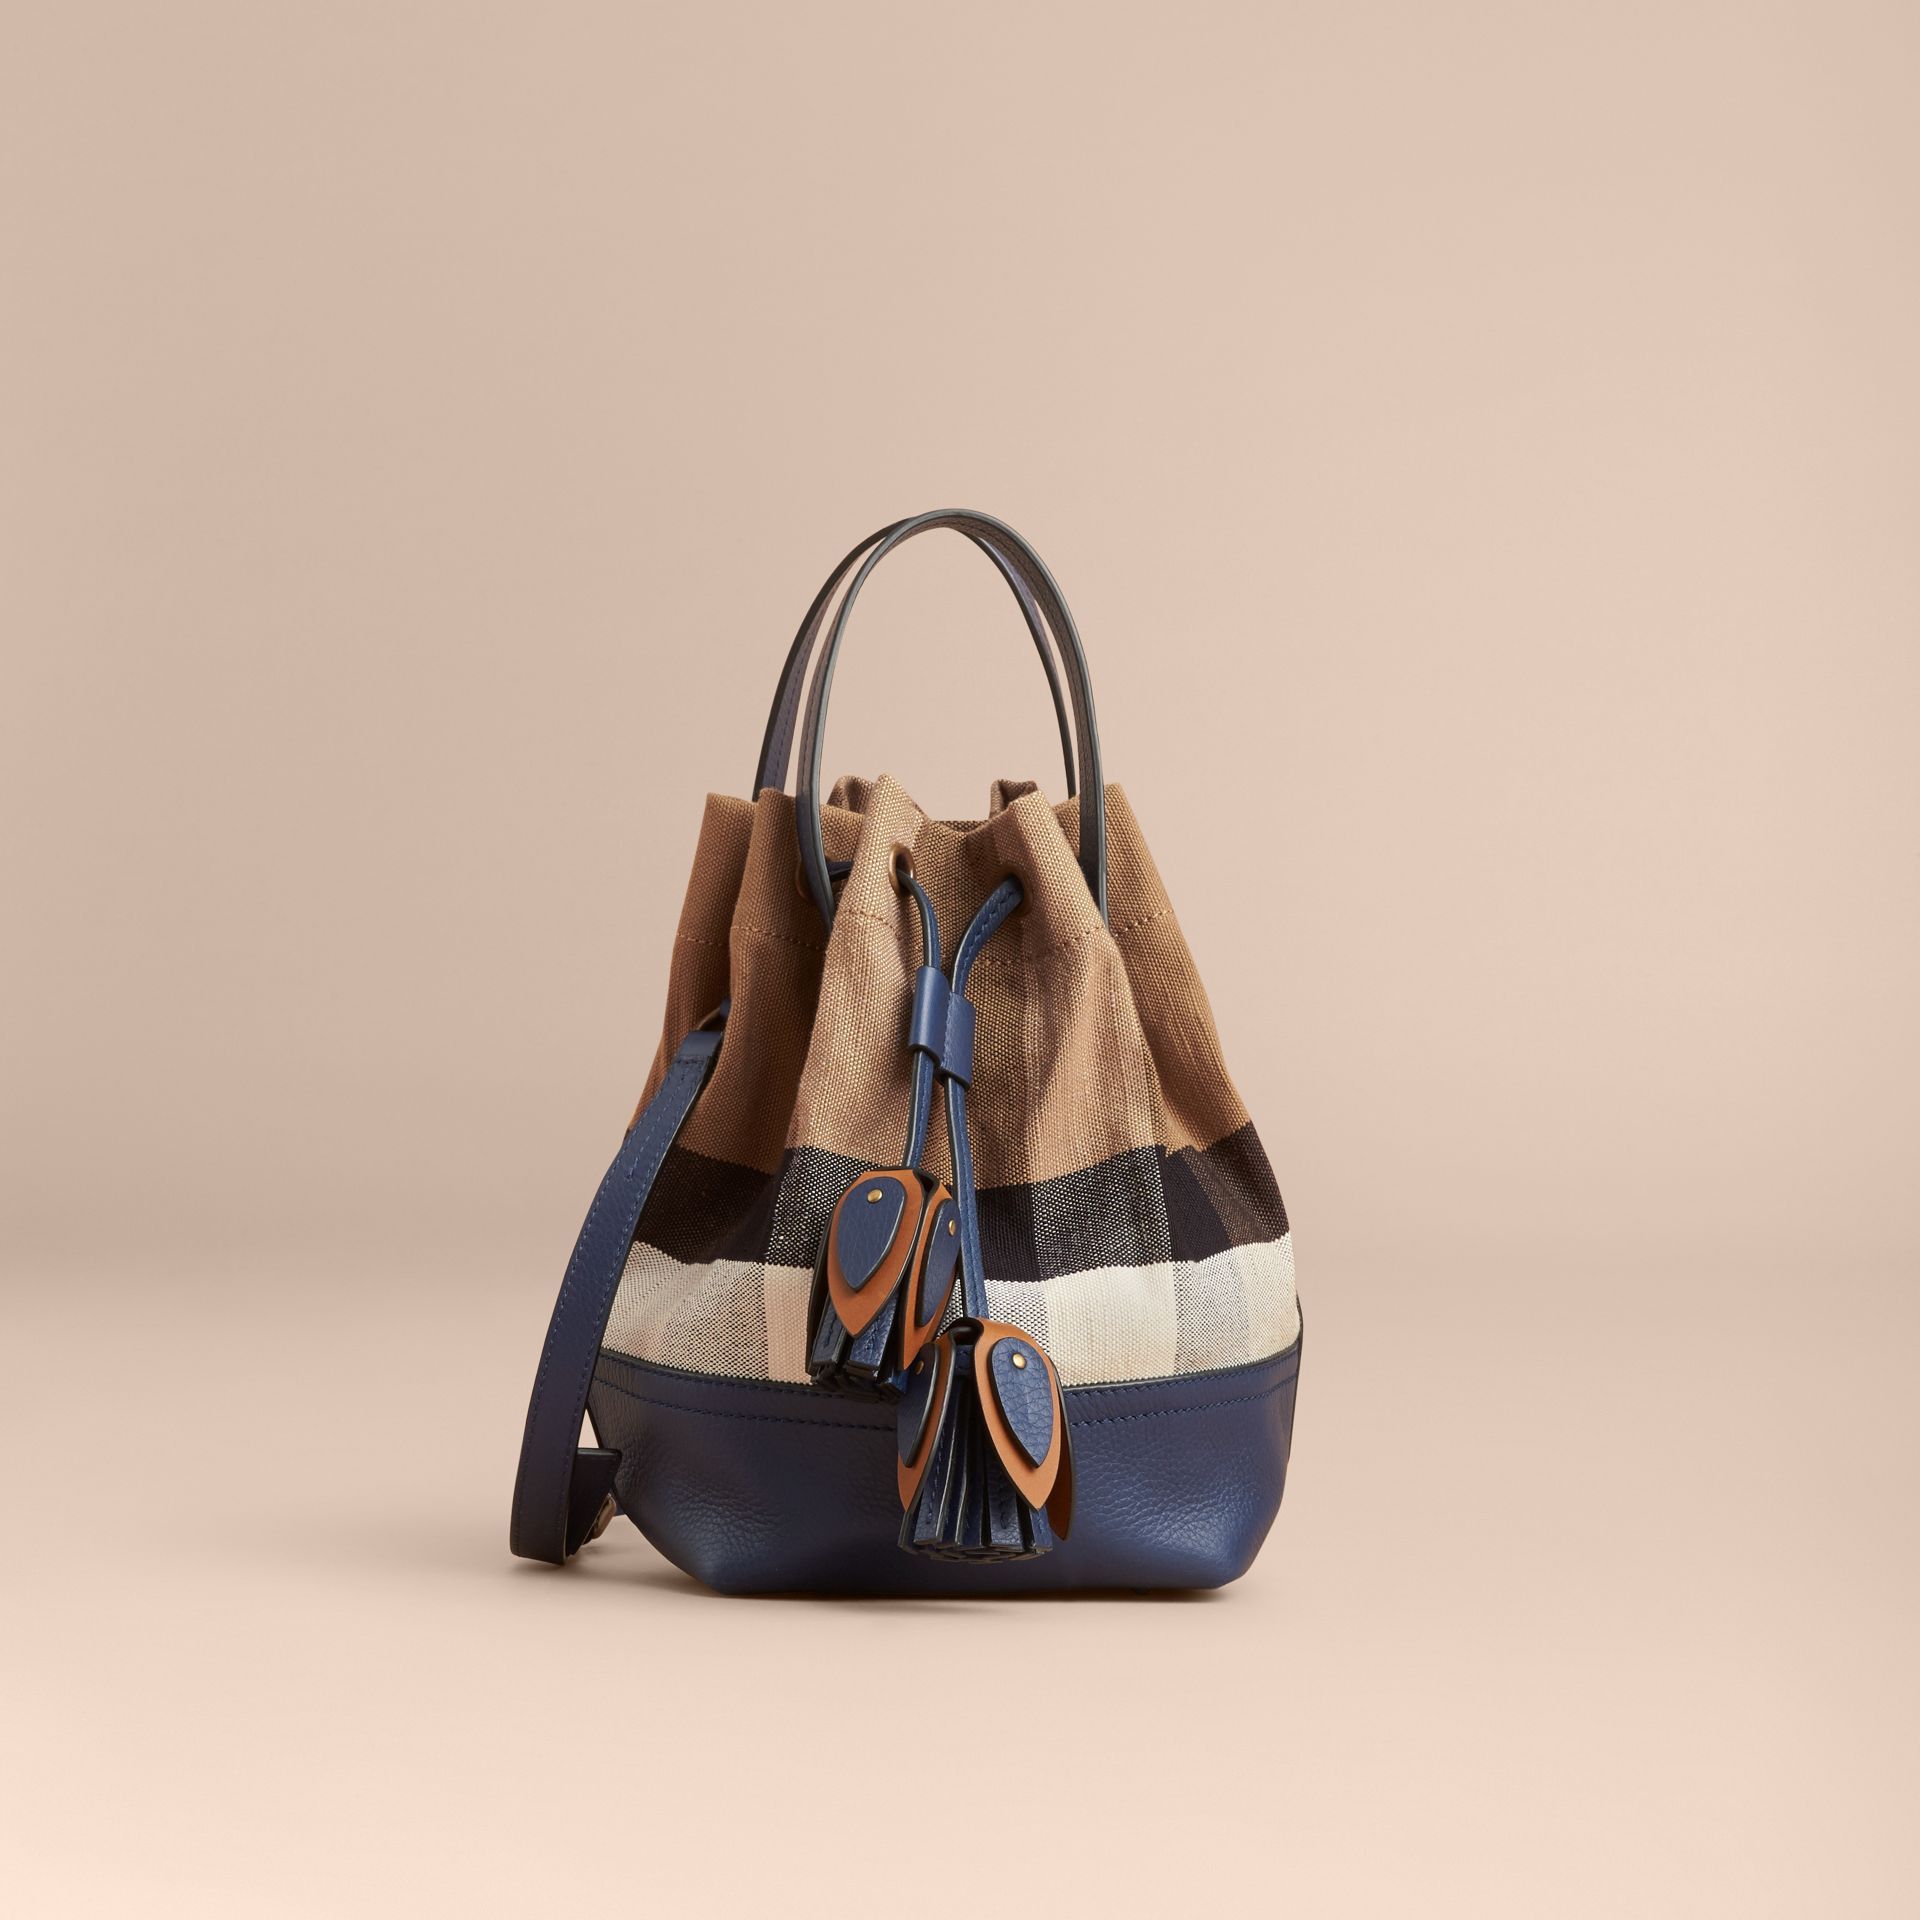 Small Canvas Check and Leather Bucket Bag in Brilliant Navy - Women | Burberry - gallery image 8